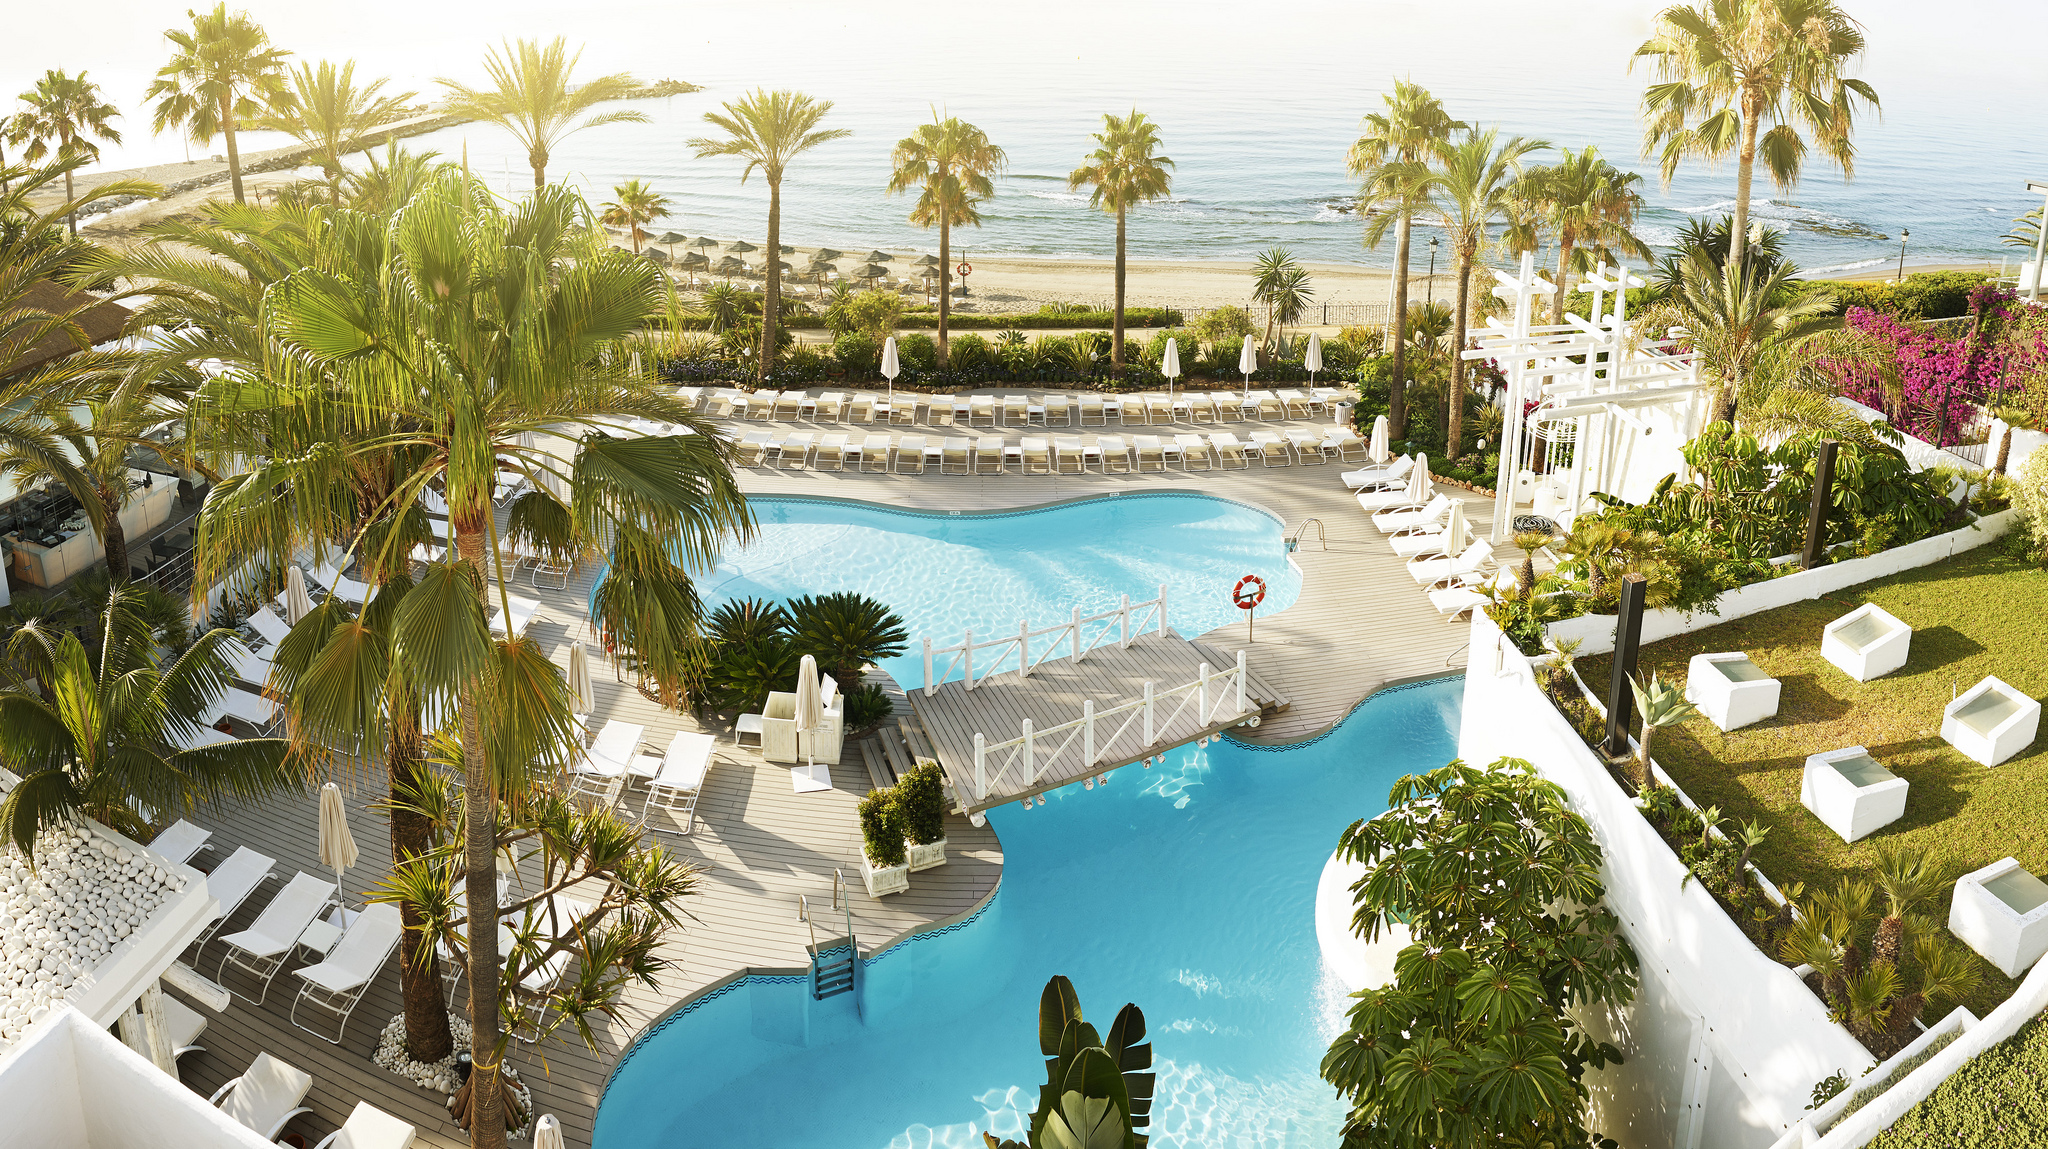 Star Hotels In Marbella On The Beach